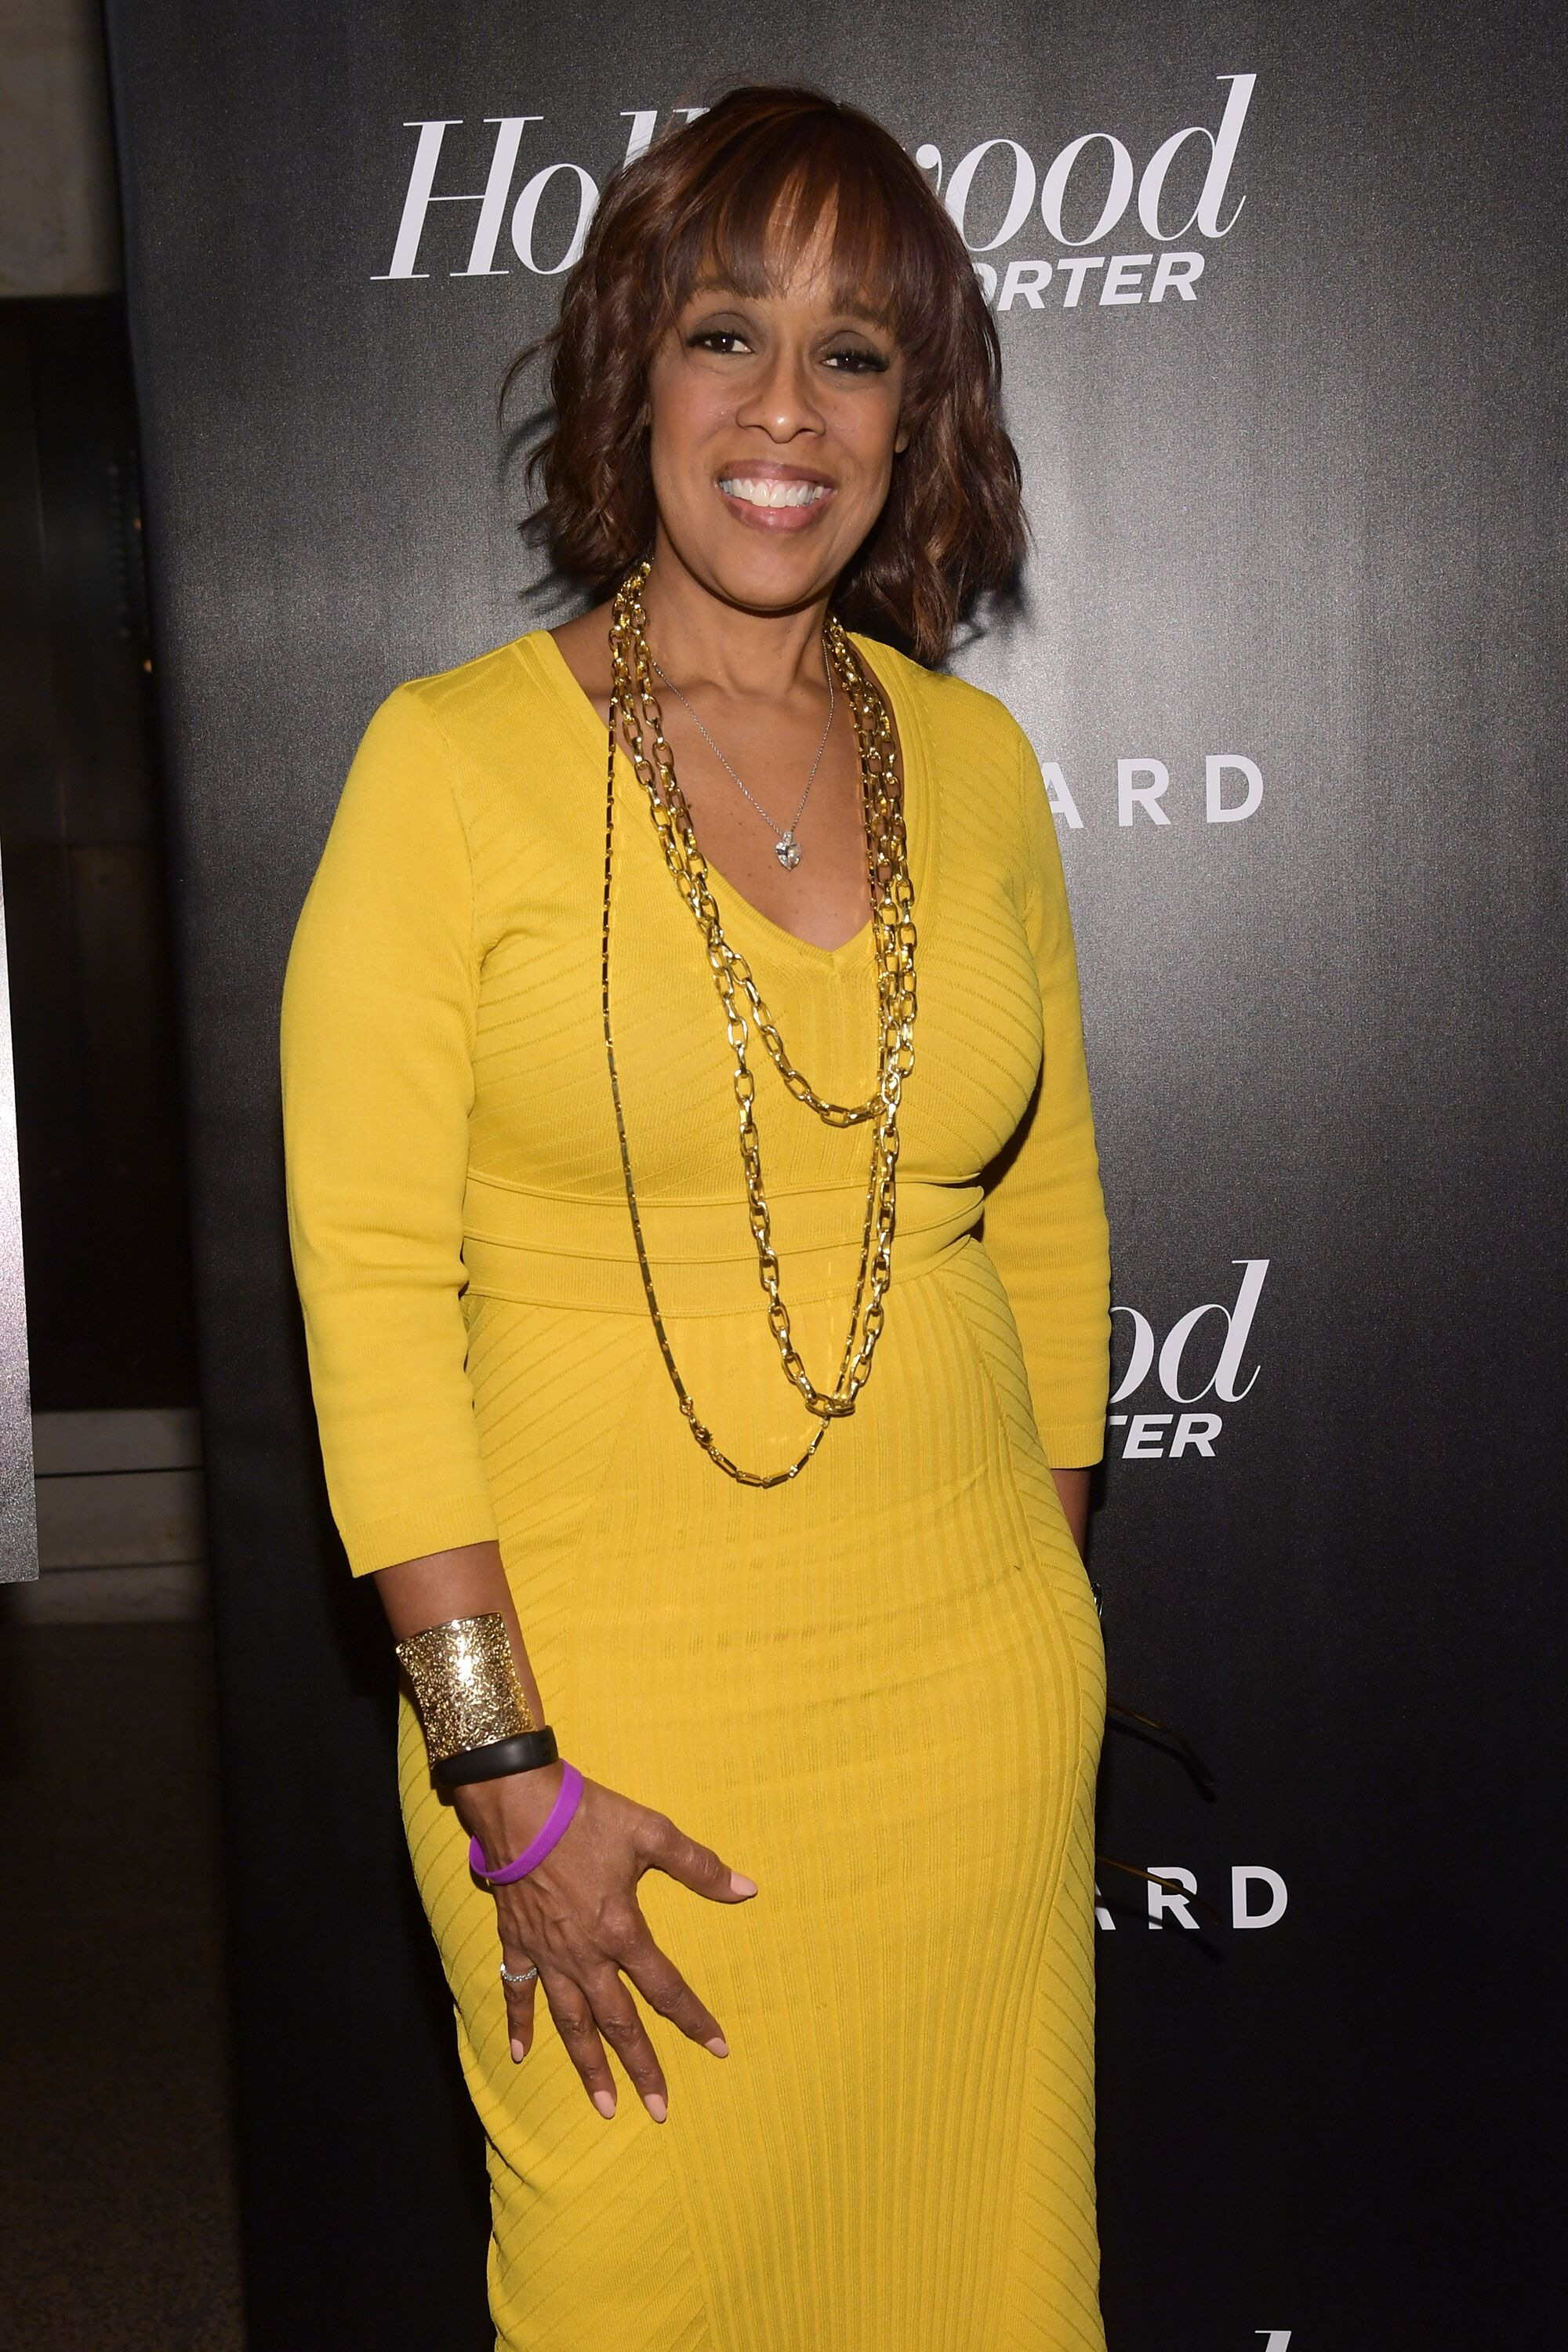 Gayle King attends The Hollywood Reporter's Most Powerful People In Media 2018 at The Pool on April 12, 2018 in New York City | Photo: Getty Images